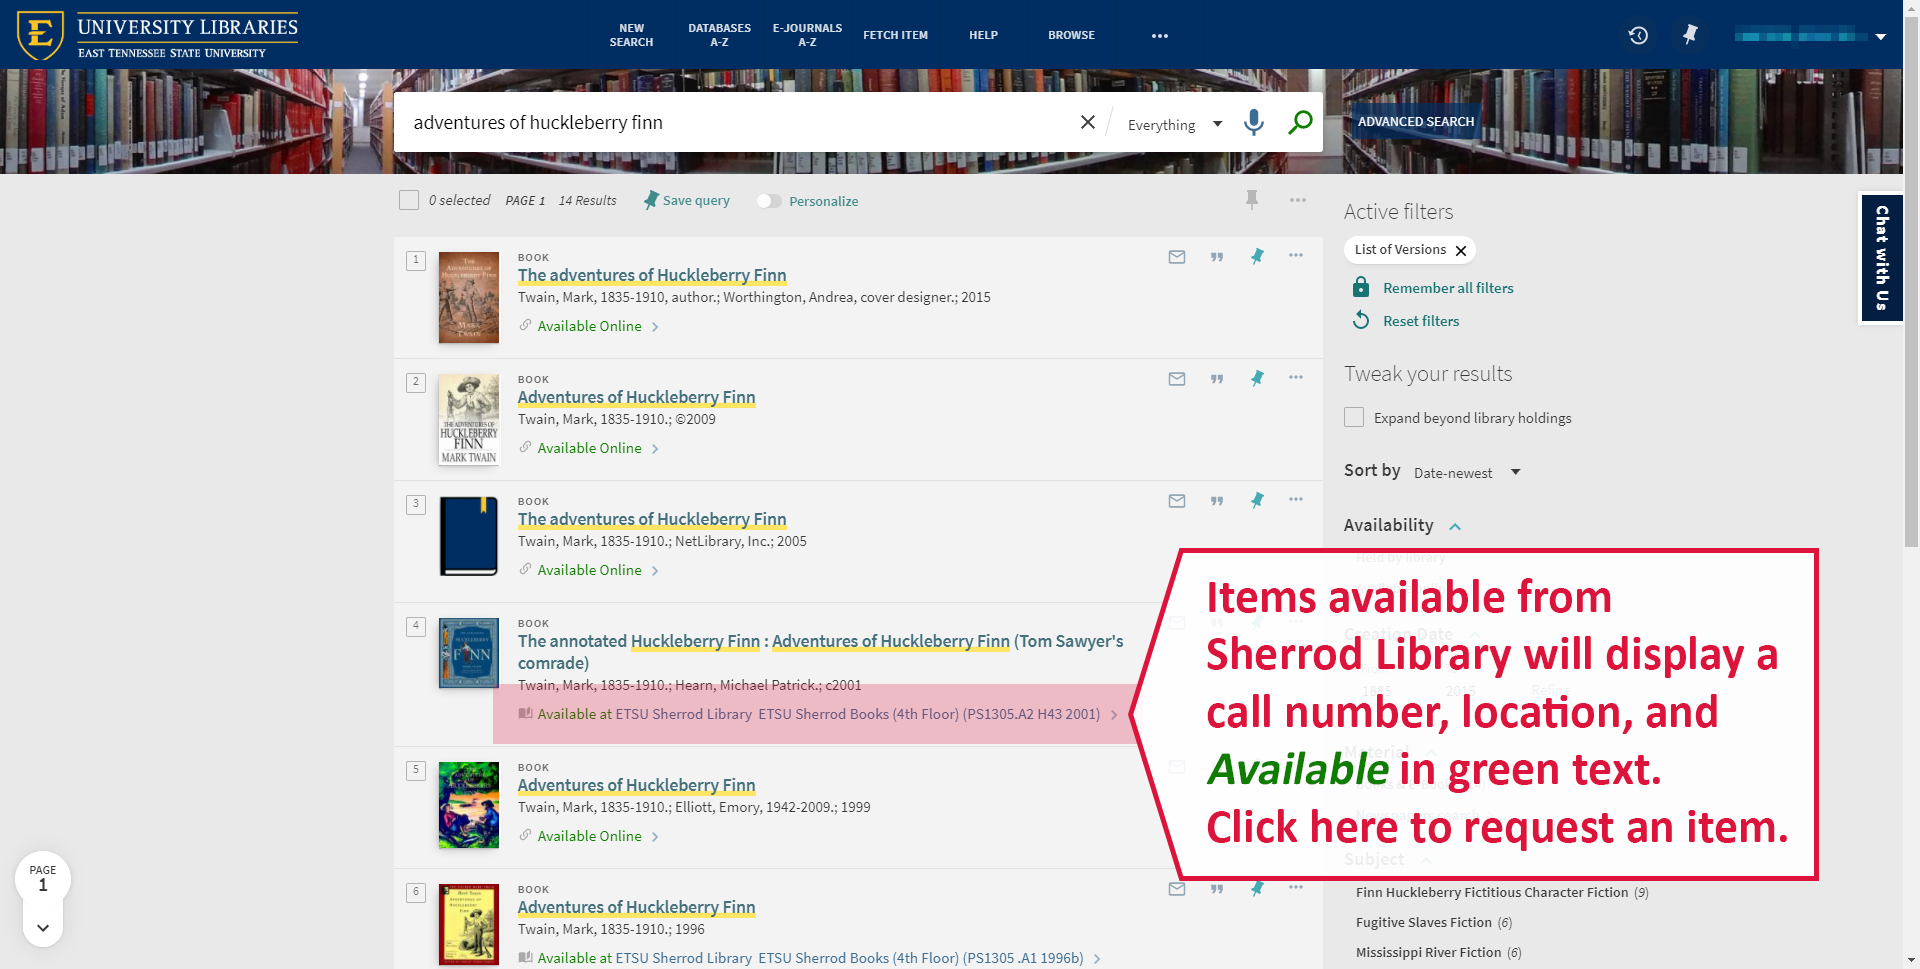 A screenshot illustrating how to request an item for home delivery.